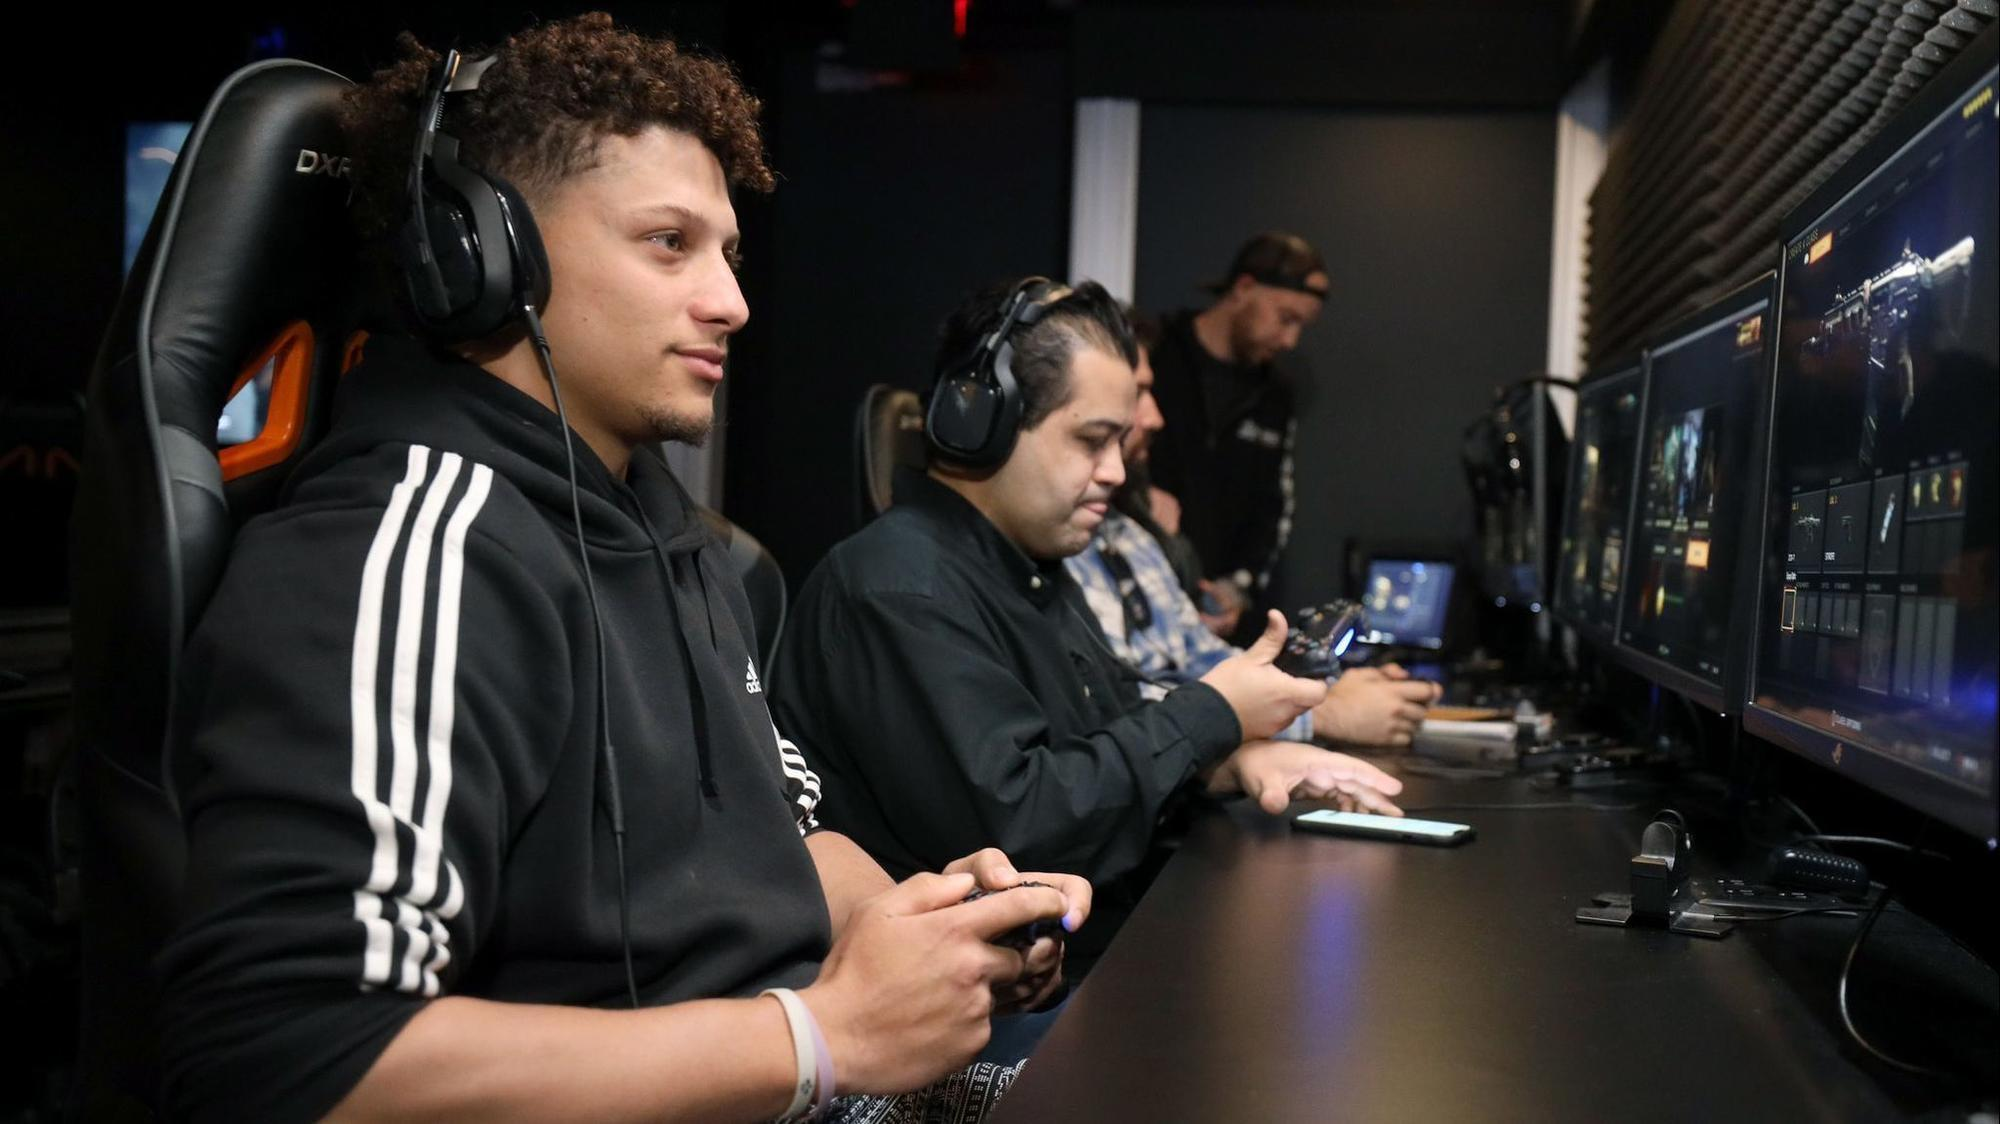 Chiefs star Patrick Mahomes' off-season mission includes playing 'Call of Duty'